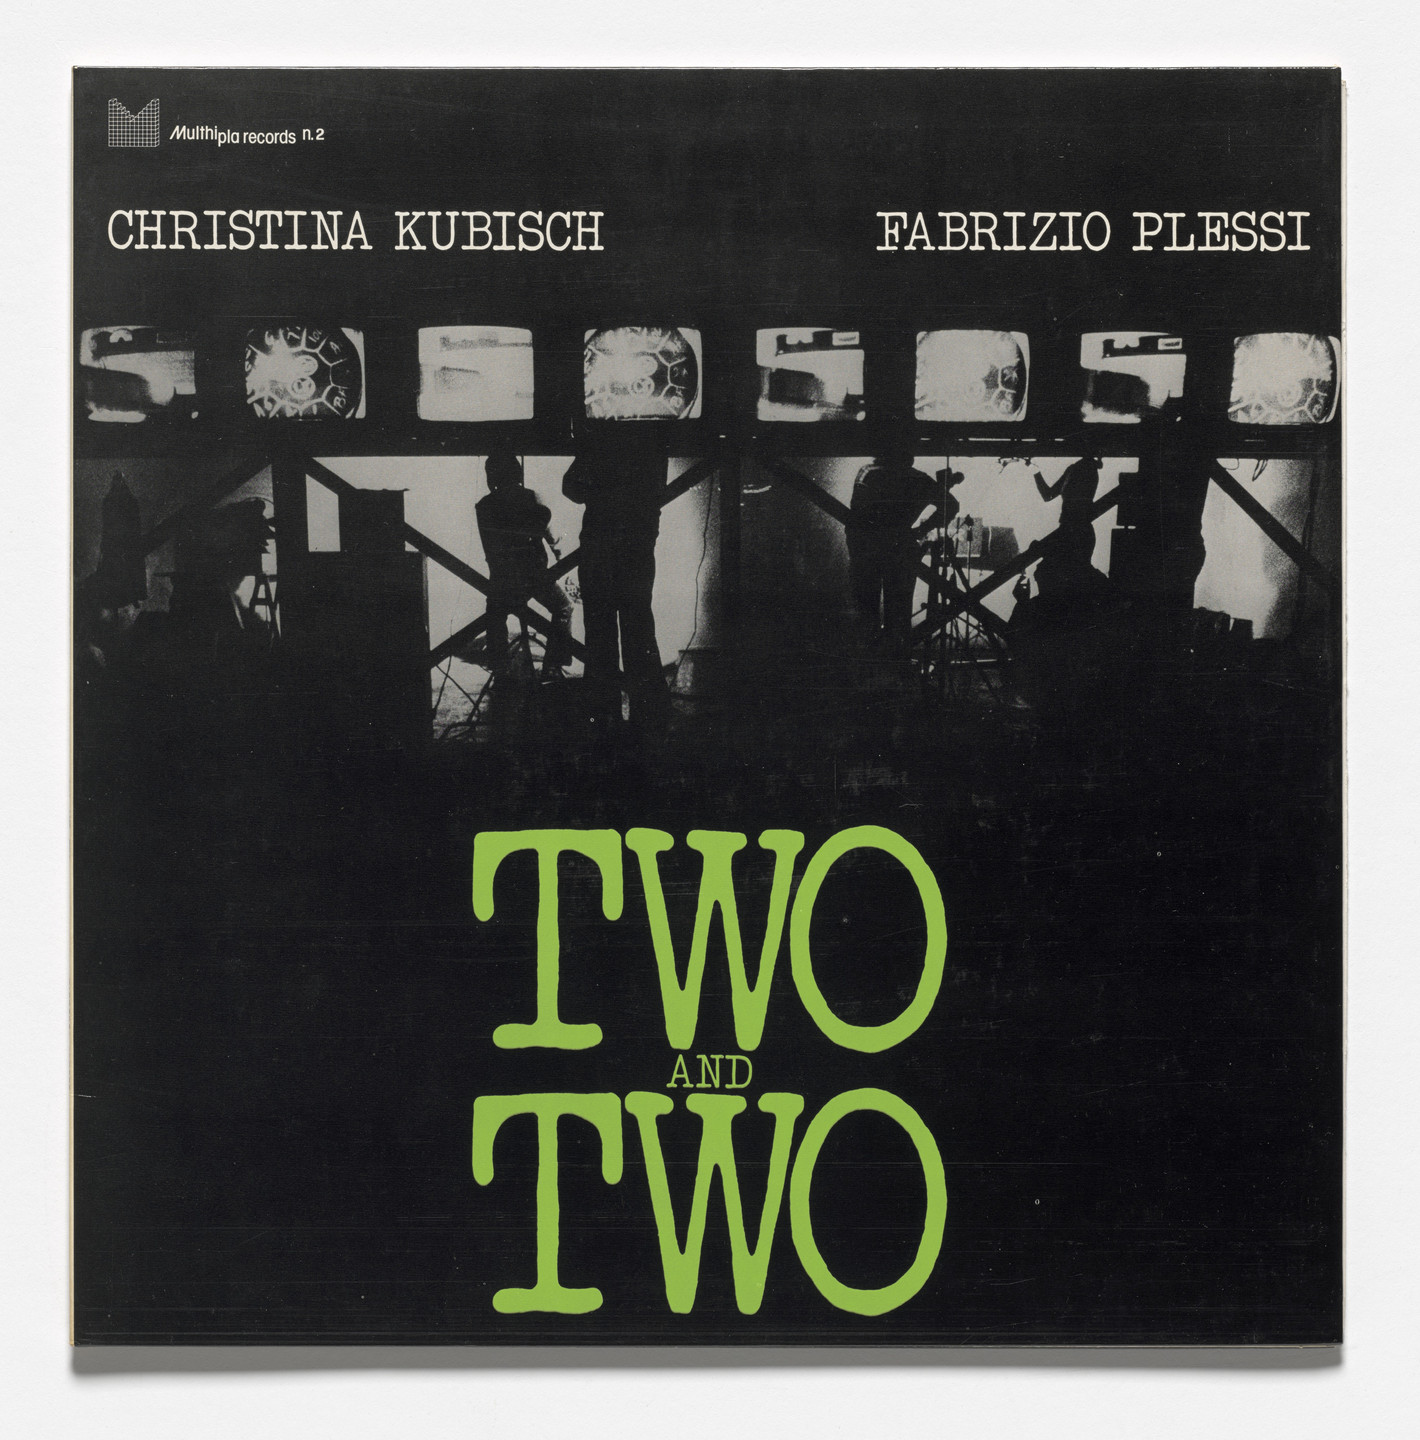 Christina Kubisch, Fabrizio Plessi. Two and Two. 1976